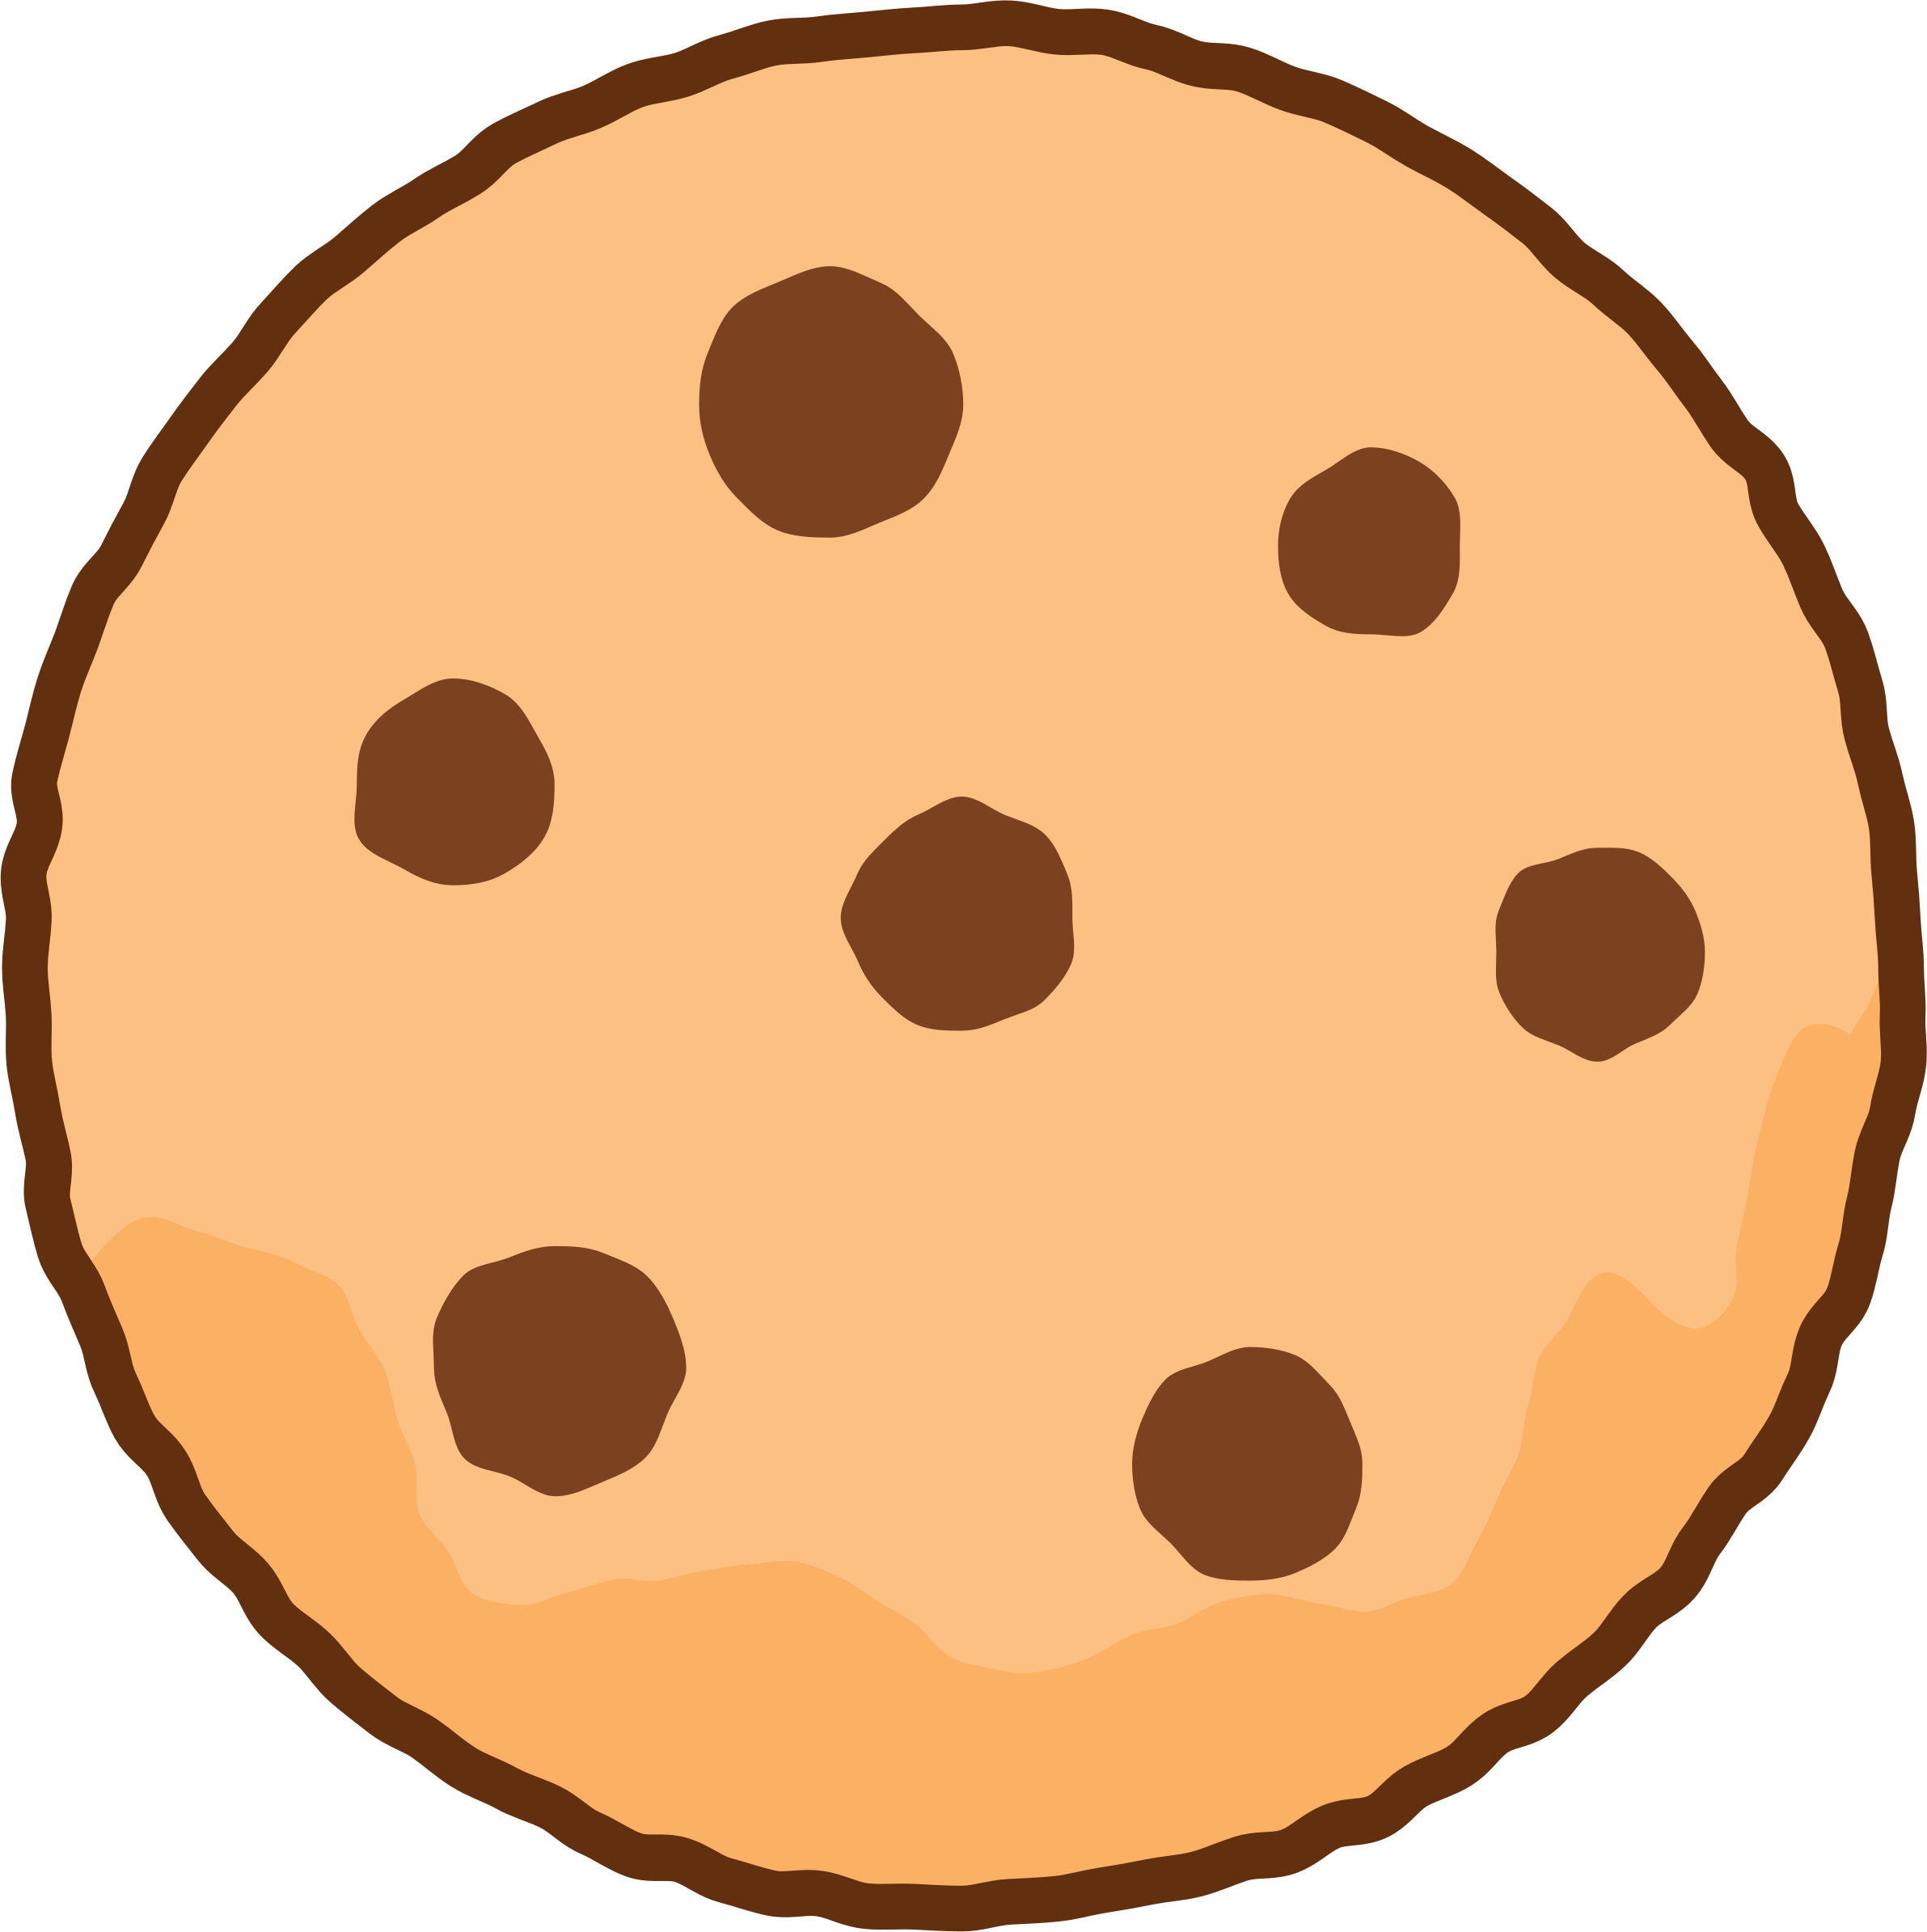 Chocolate Chip Cookie Coloring Pages | Free download best ...